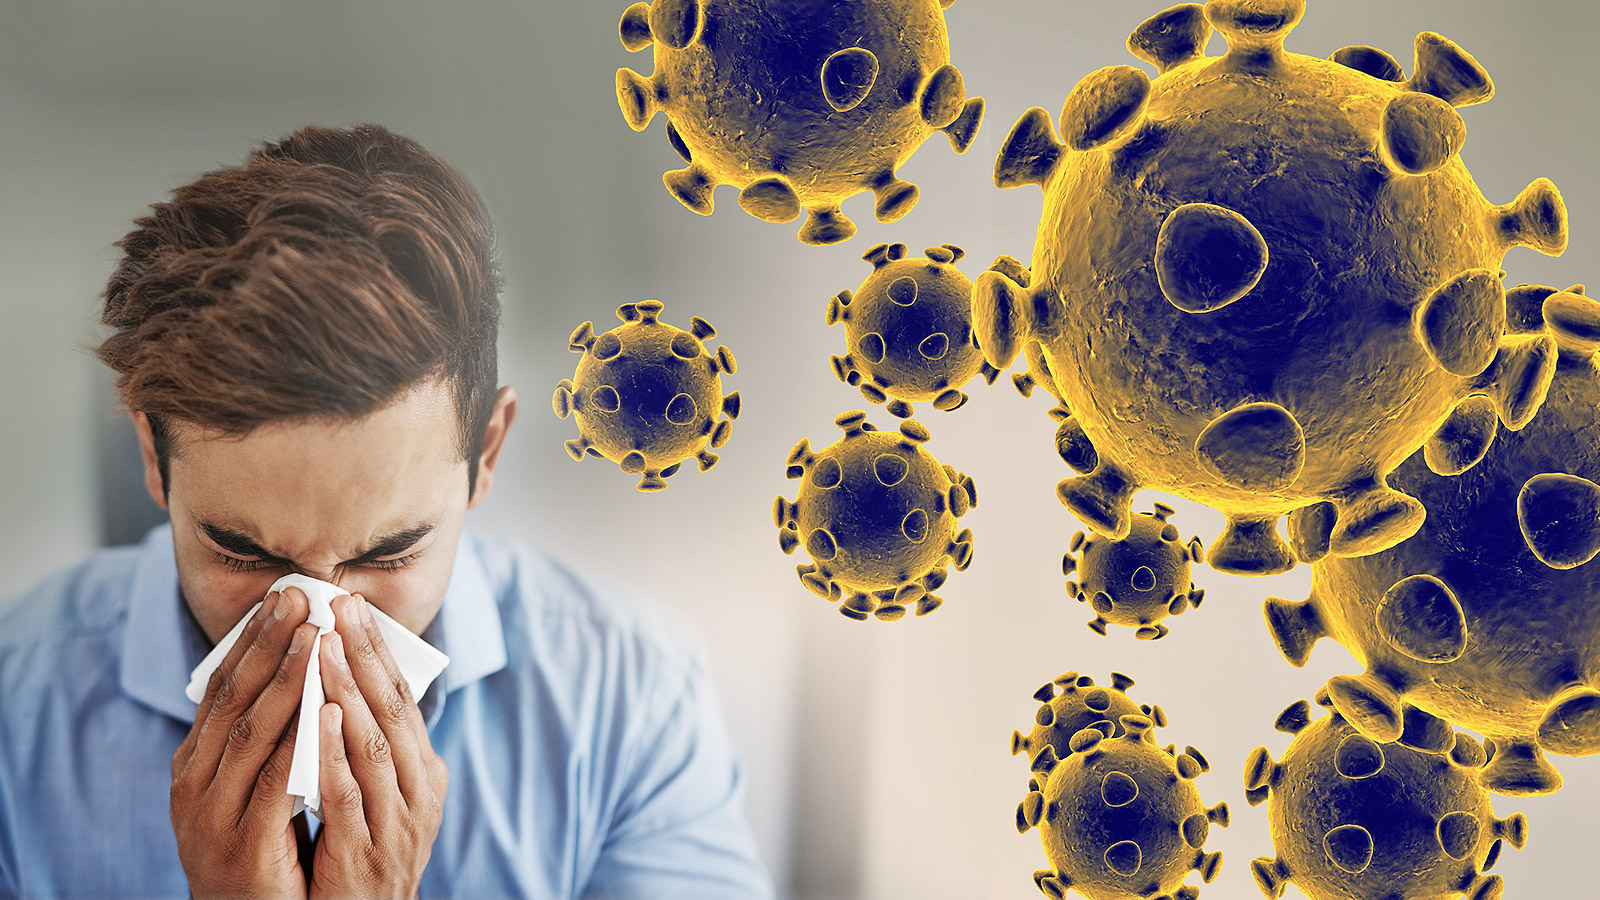 Questions and answers about Coronavirus